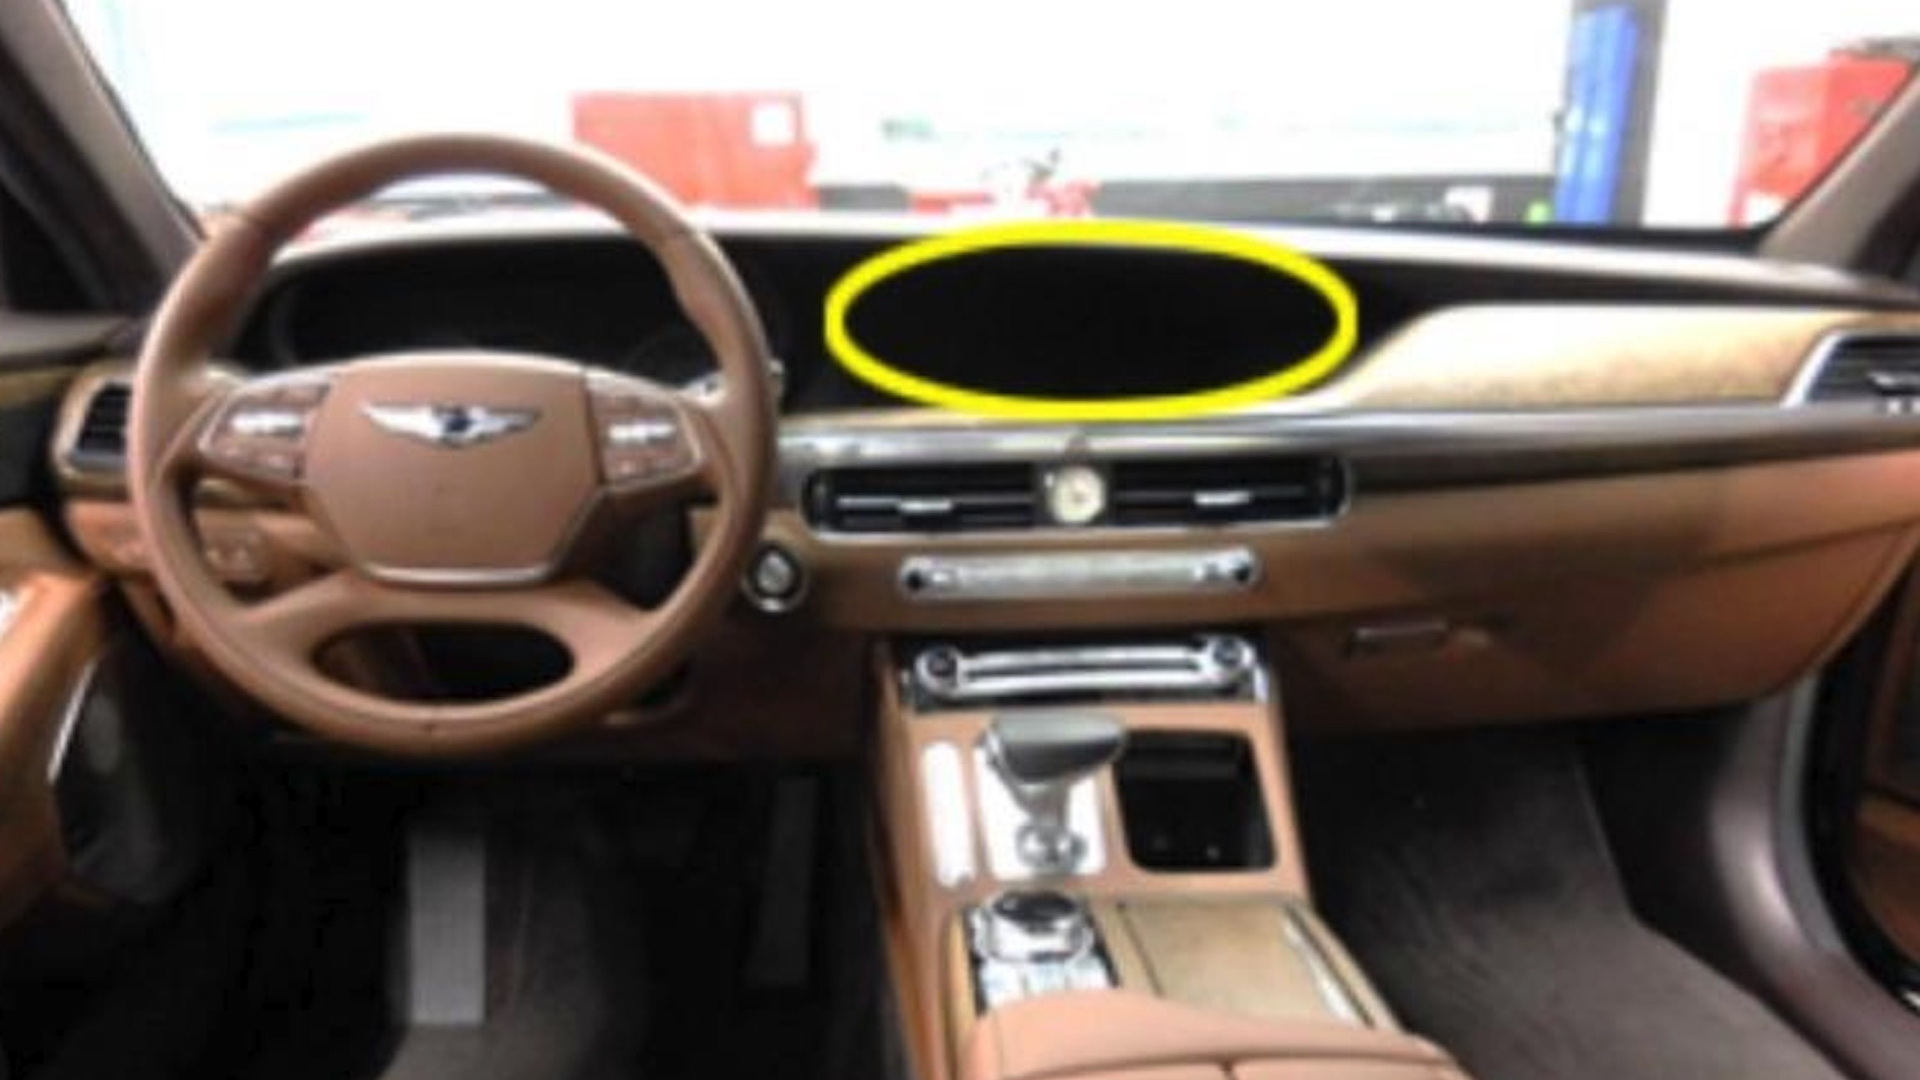 2020 Genesis G90 leaked photos via Clién